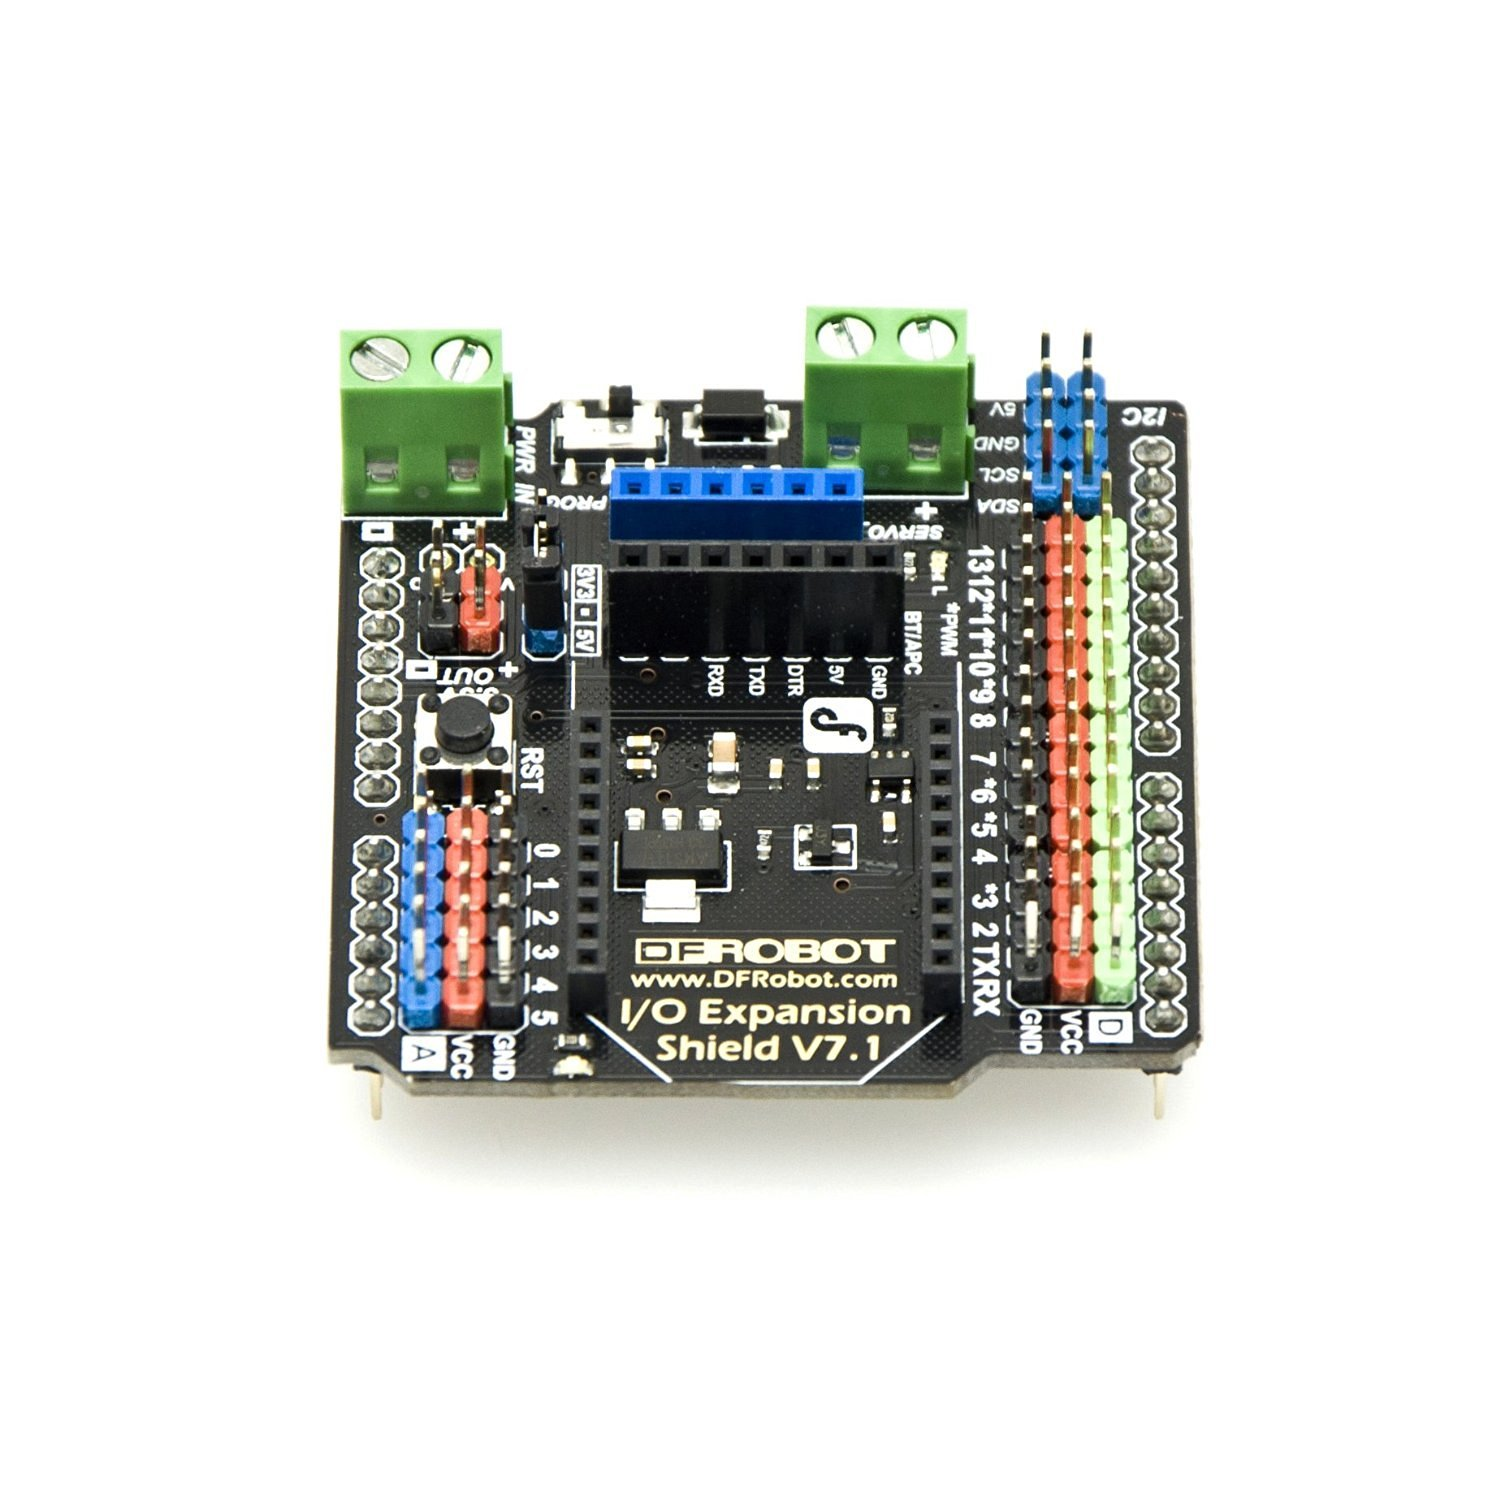 Venel--Gravity IO Sensor Expansion Board to Extend Arduino Port Interfaces Into 3P,3P Line Sensor Module.14 Digital Ports ,6 Analog Port. Support Interface: I2C,SPI,Xbee (Xbee pro),Bluetooth, APC220